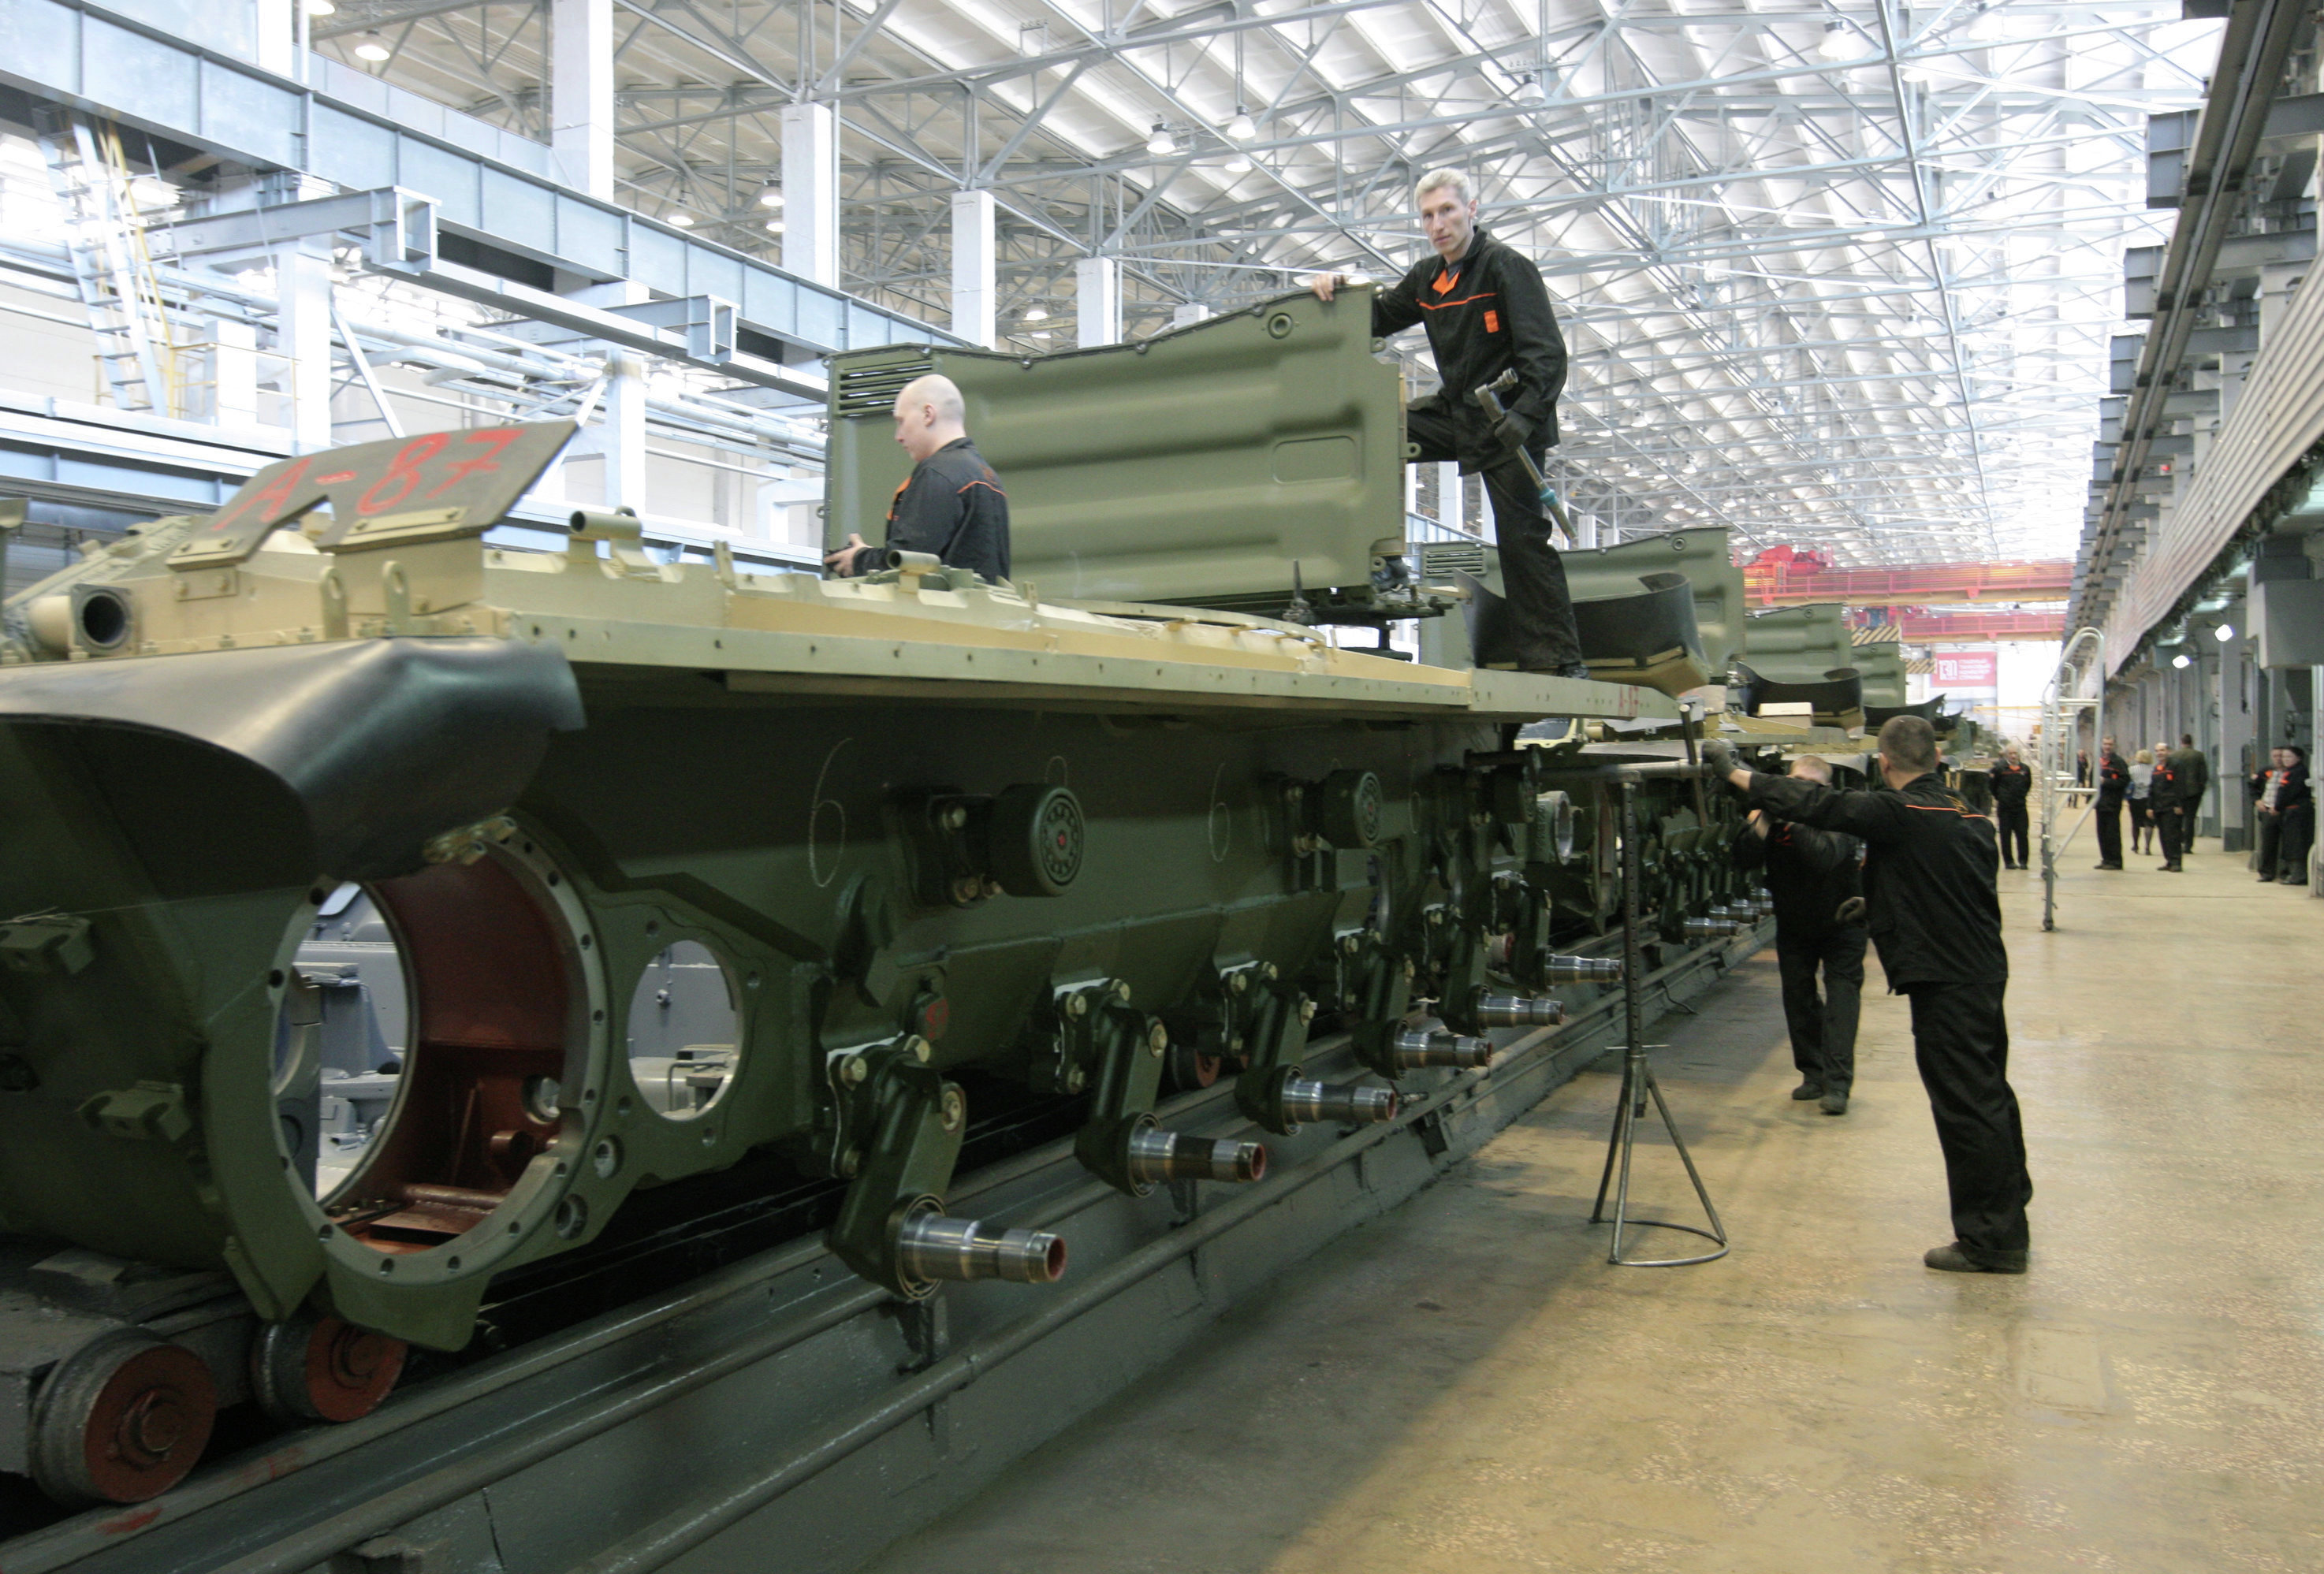 Workers of the JSC Uralvagonzavod assemble tanks on the production floor. In addition to its military production, the company is one of the largest scientific and industrial complexes in Russia.